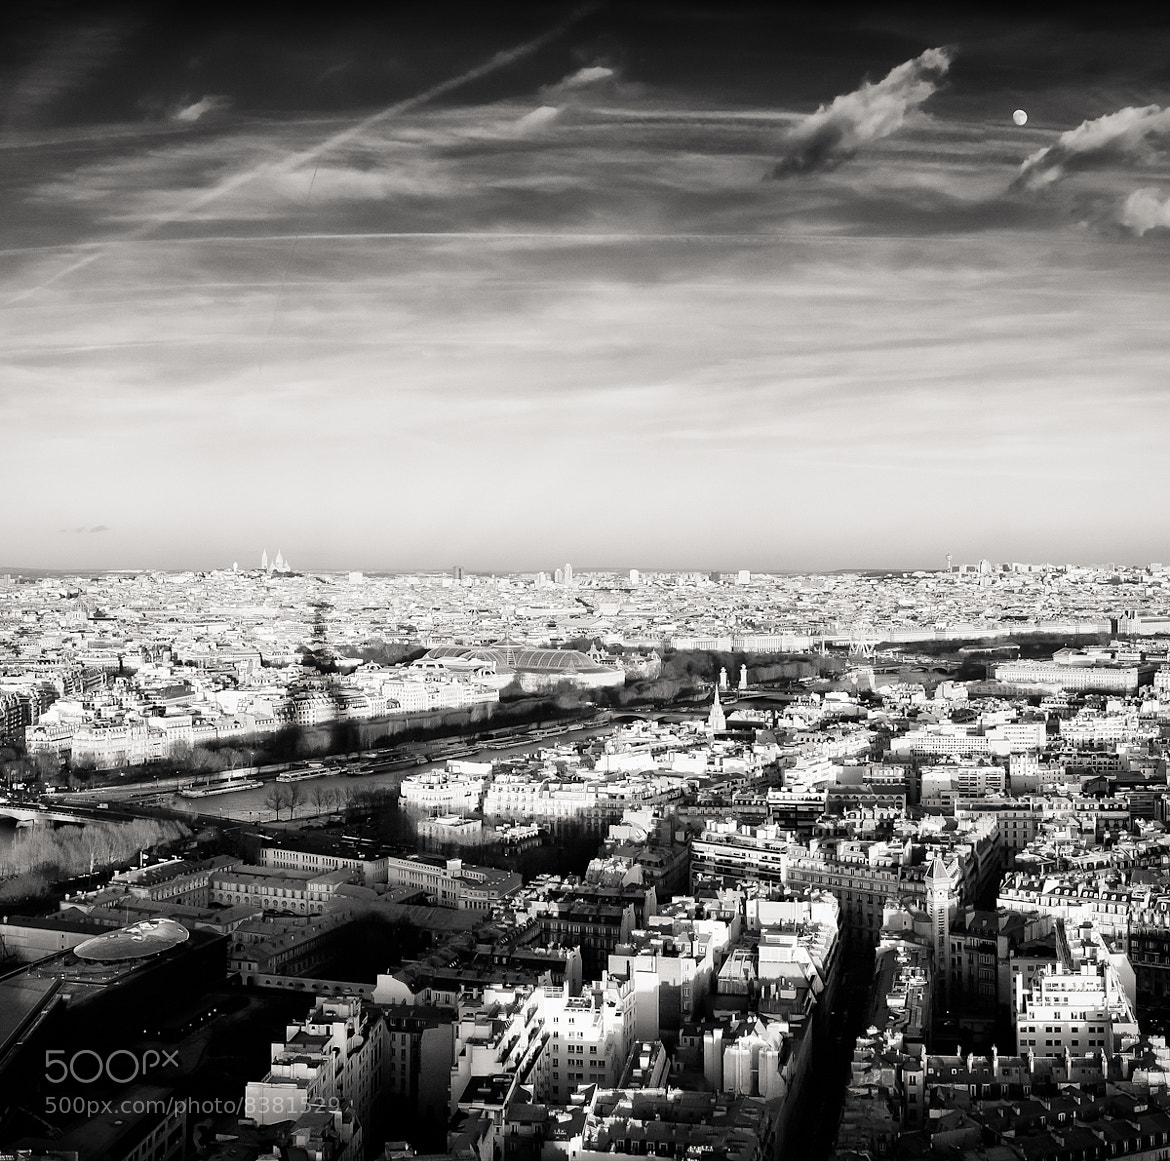 Photograph Shadow of The Eiffel Tower by David Williams on 500px